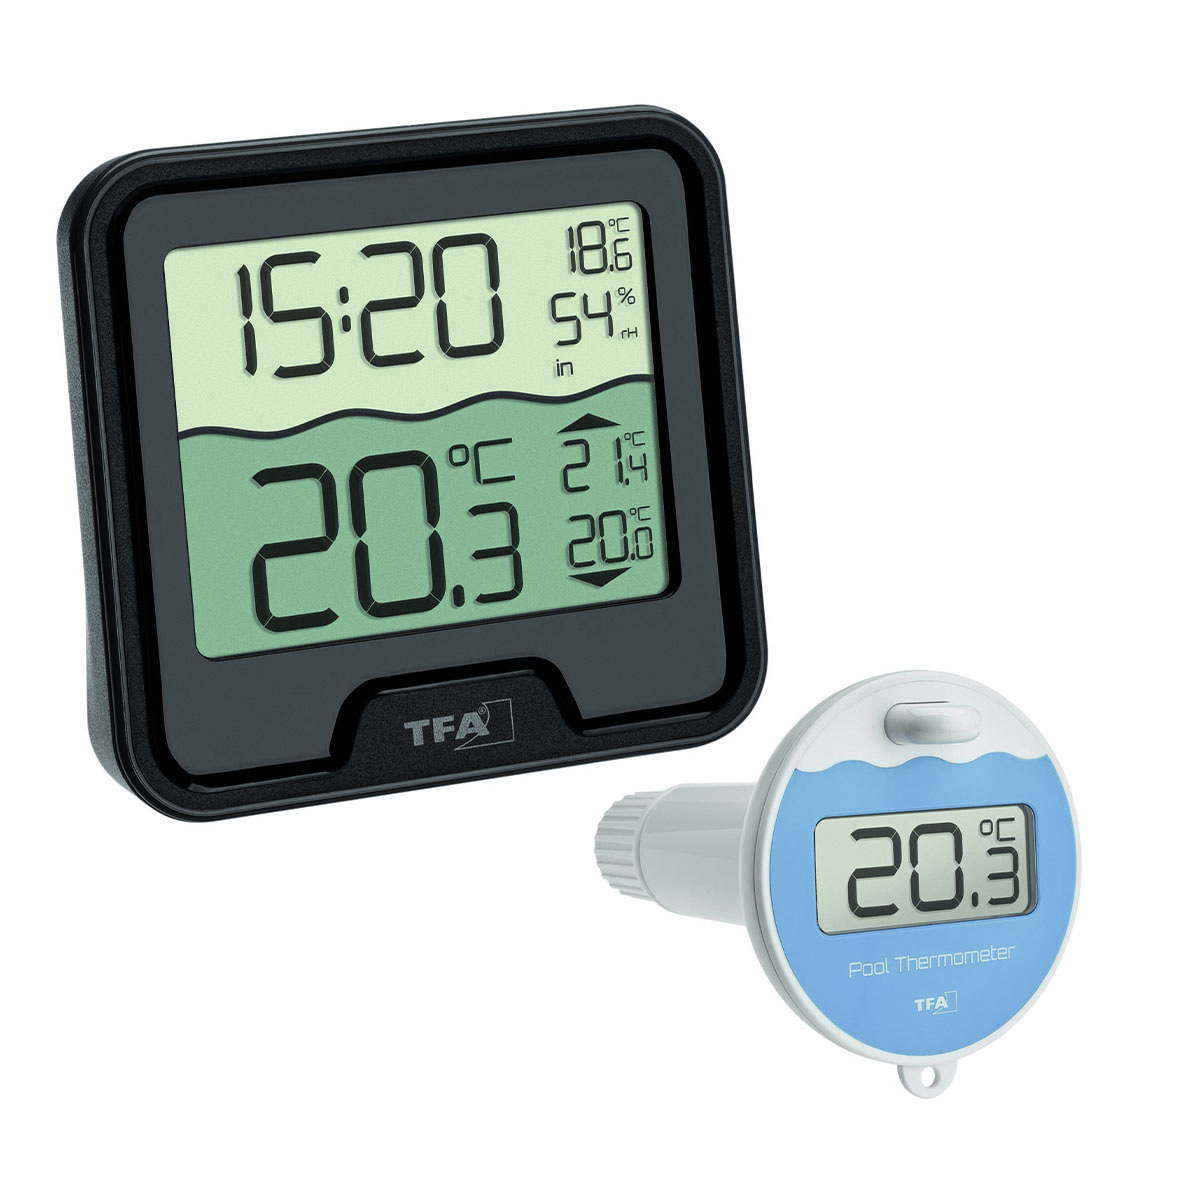 30-3066-01-funk-poolthermometer-marbella-1200x1200px.jpg